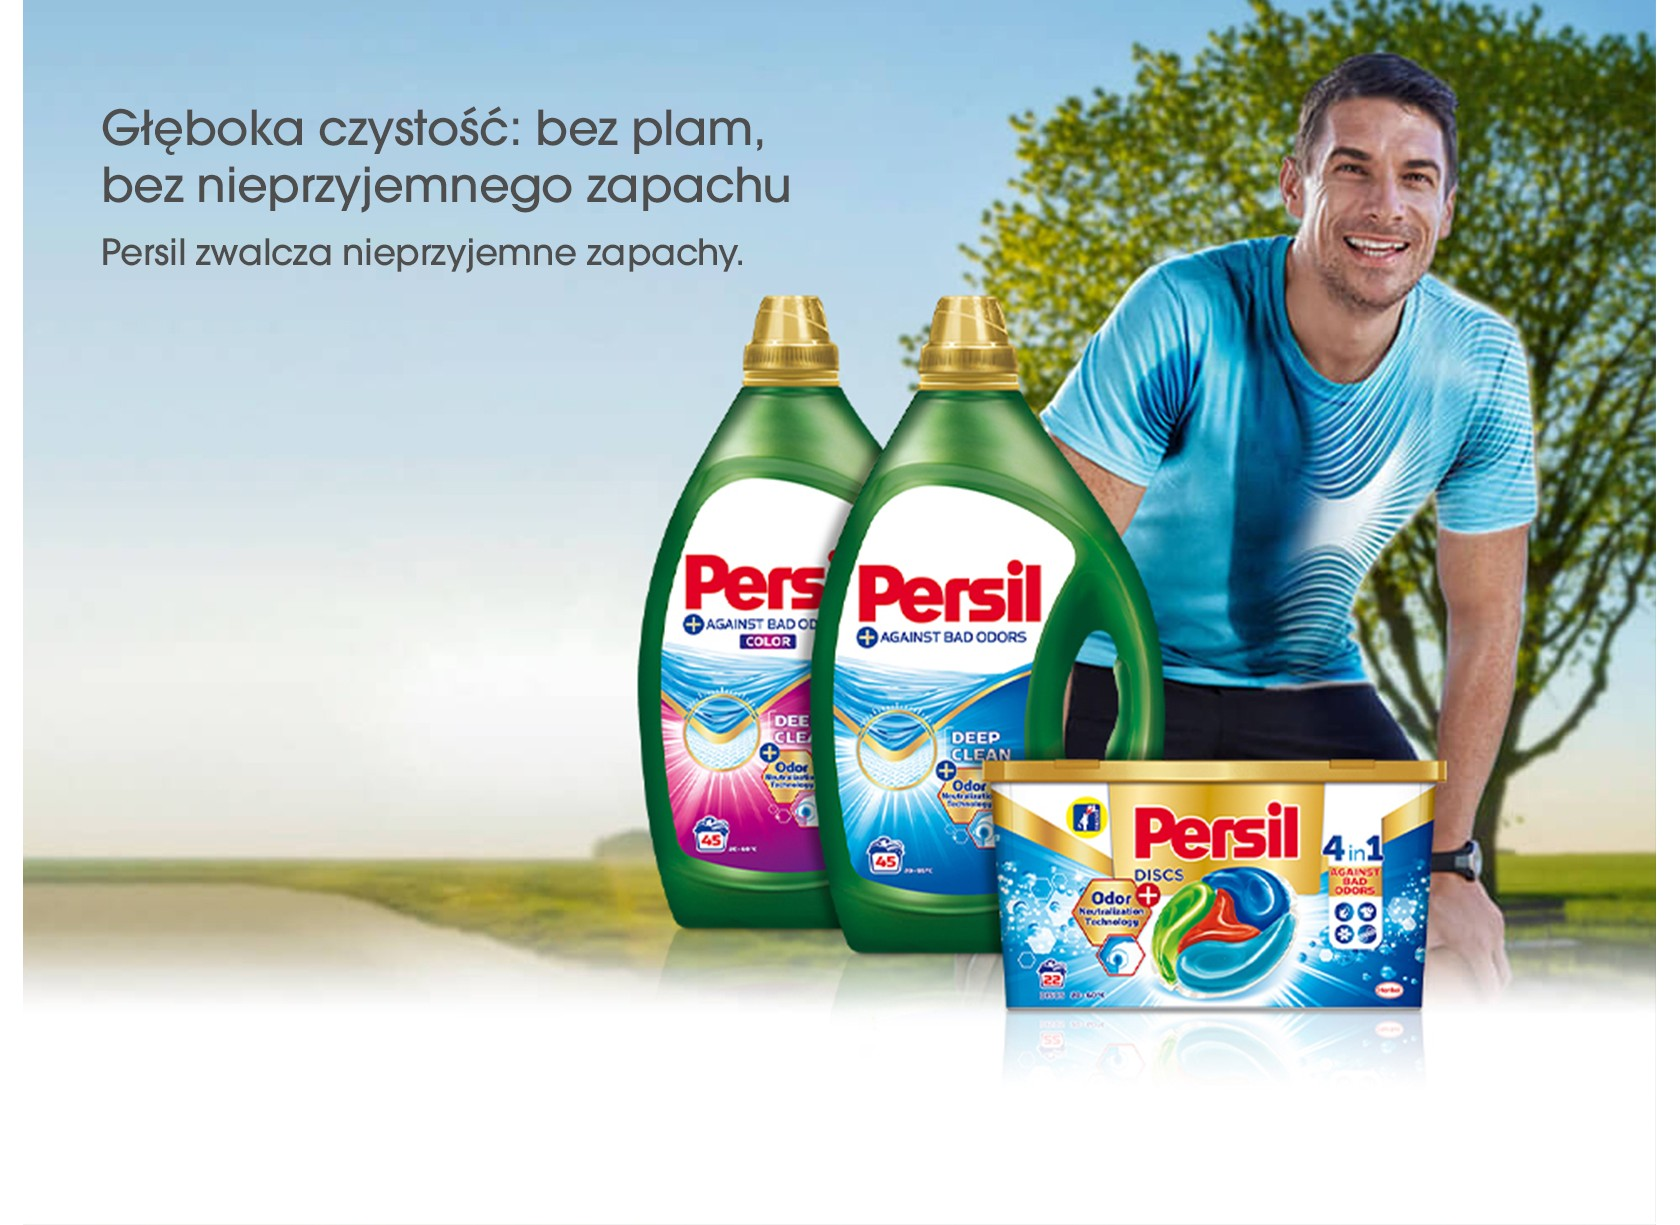 Persil 4in1 Discs Home Slider Mobile